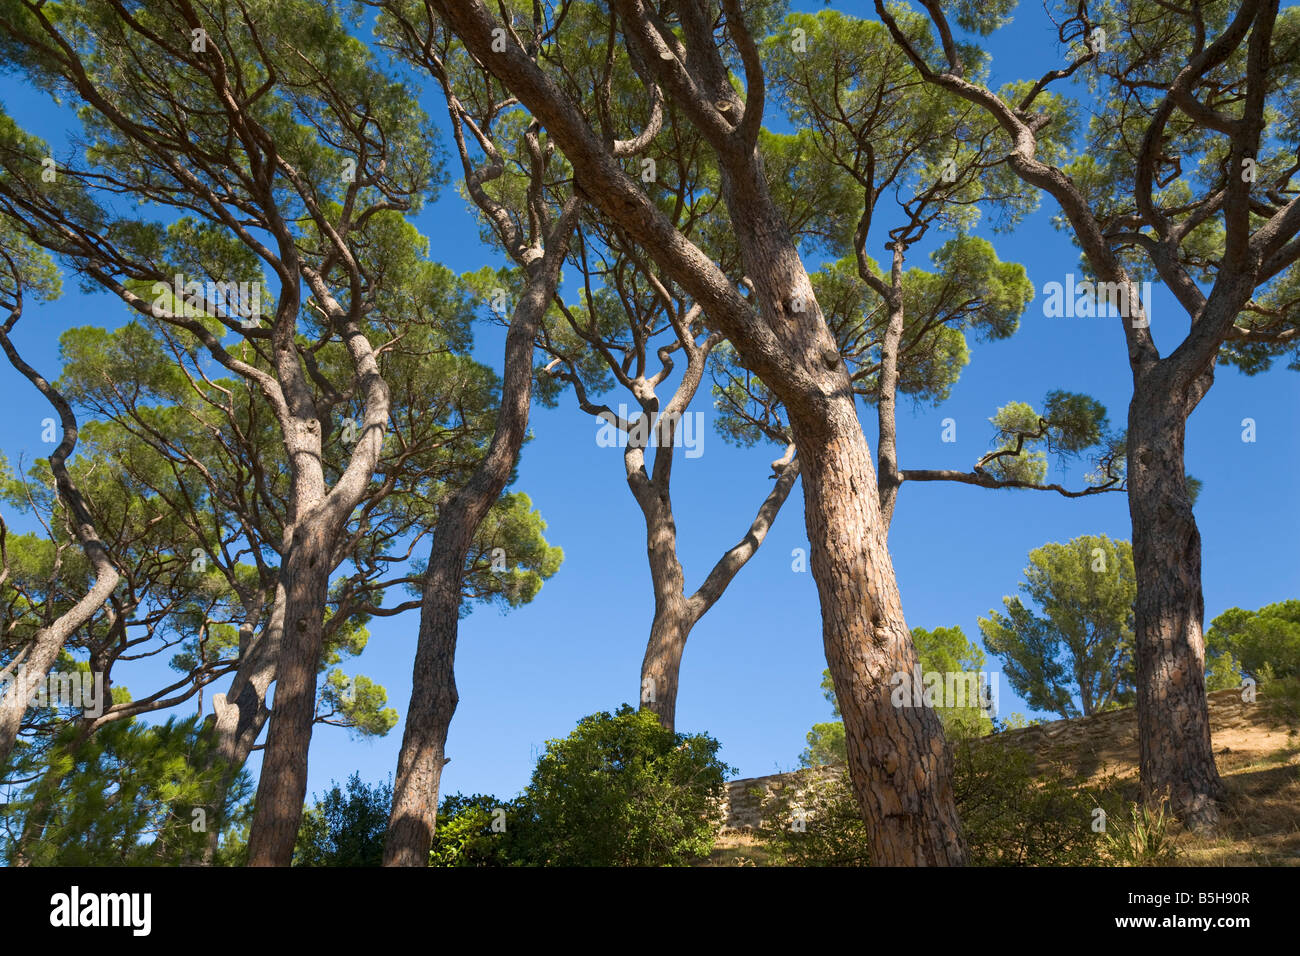 Stone pines and blue sky at the Cote d'Azur / Provence / Southern France - Stock Image